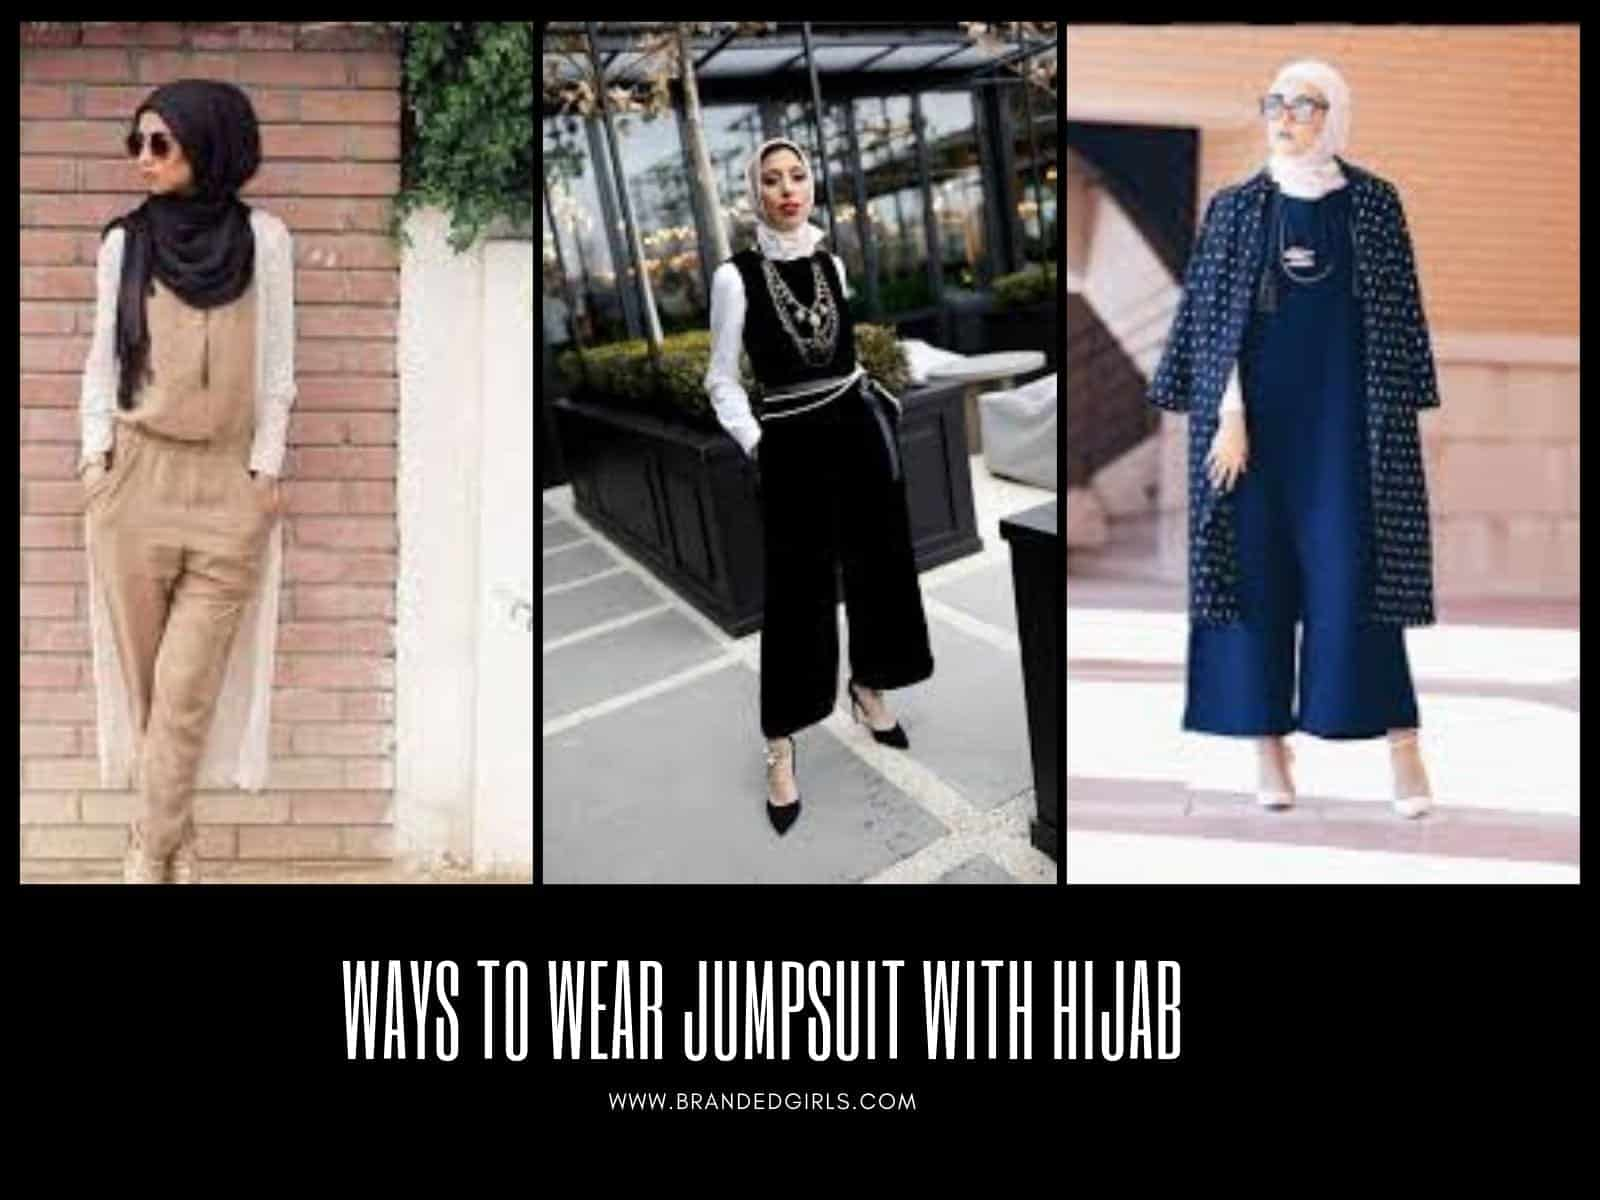 Ways-to-Wear-Jumpsuit-with-Hijab Hijab With Jumpsuits - 16 Ways To Wear Jumpsuit With Hijab